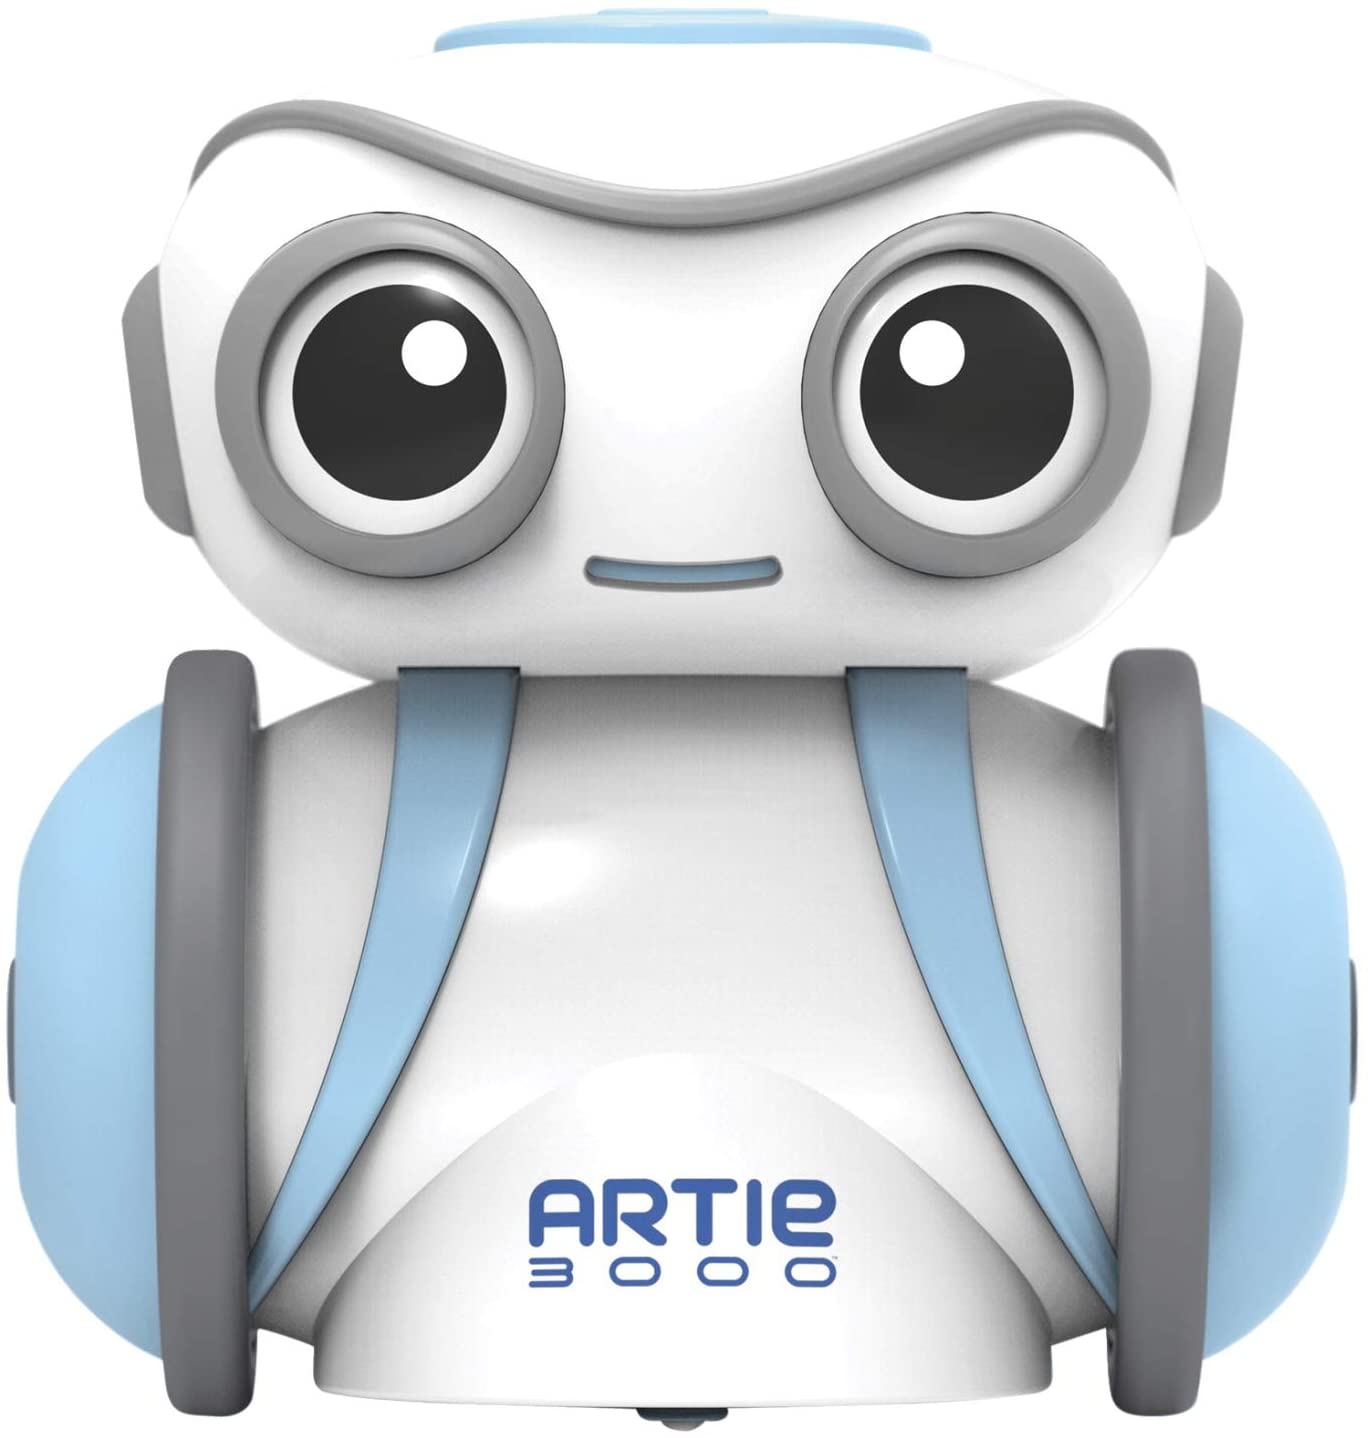 Learning Resources Artie 3000.